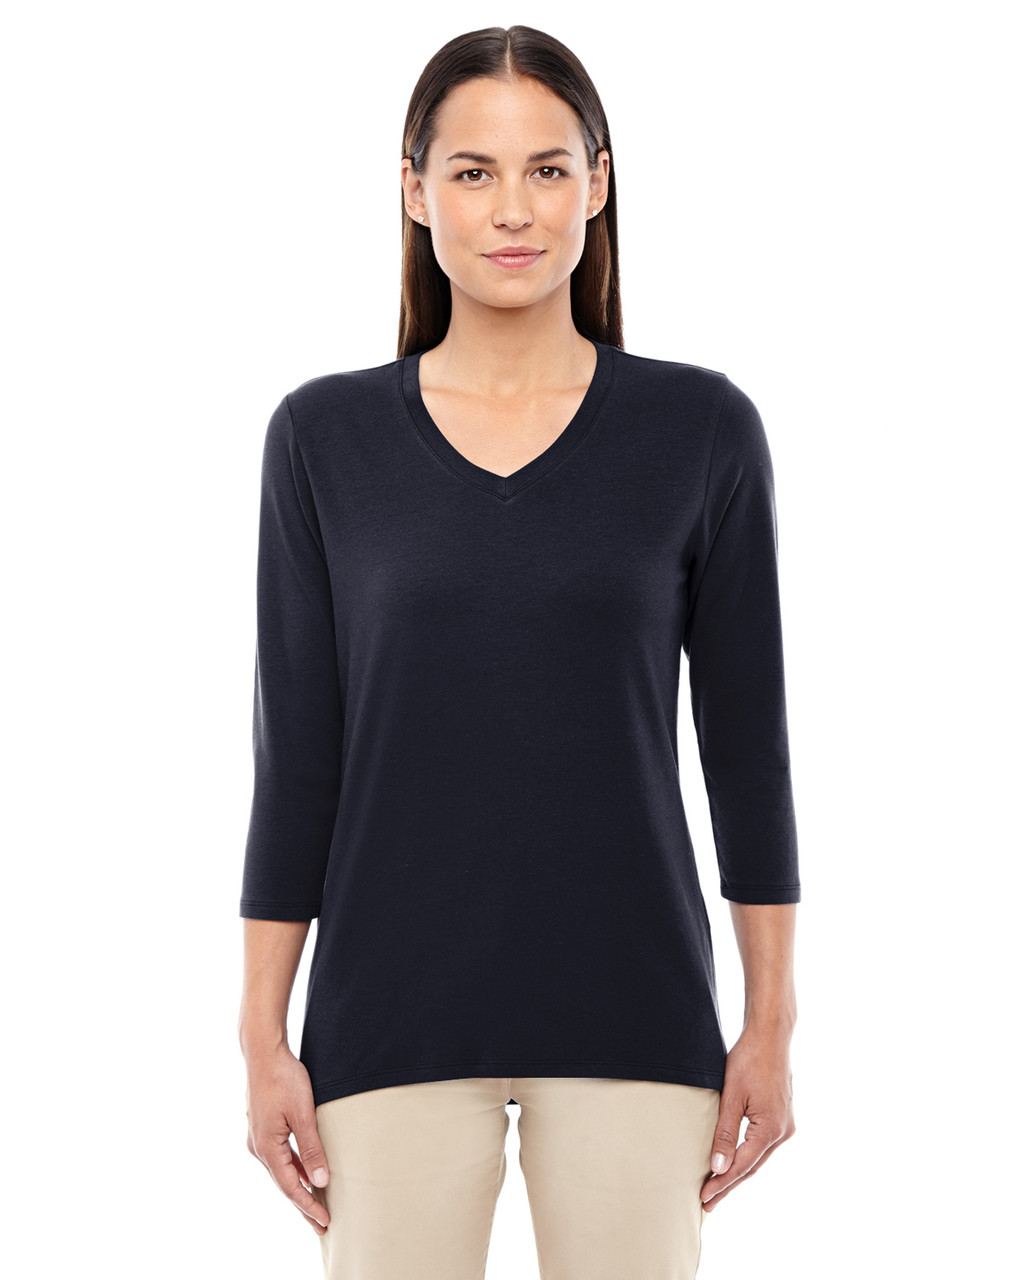 Black - DP184W Devon & Jones Ladies' Perfect Fit Bracelet Length V-Neck Top